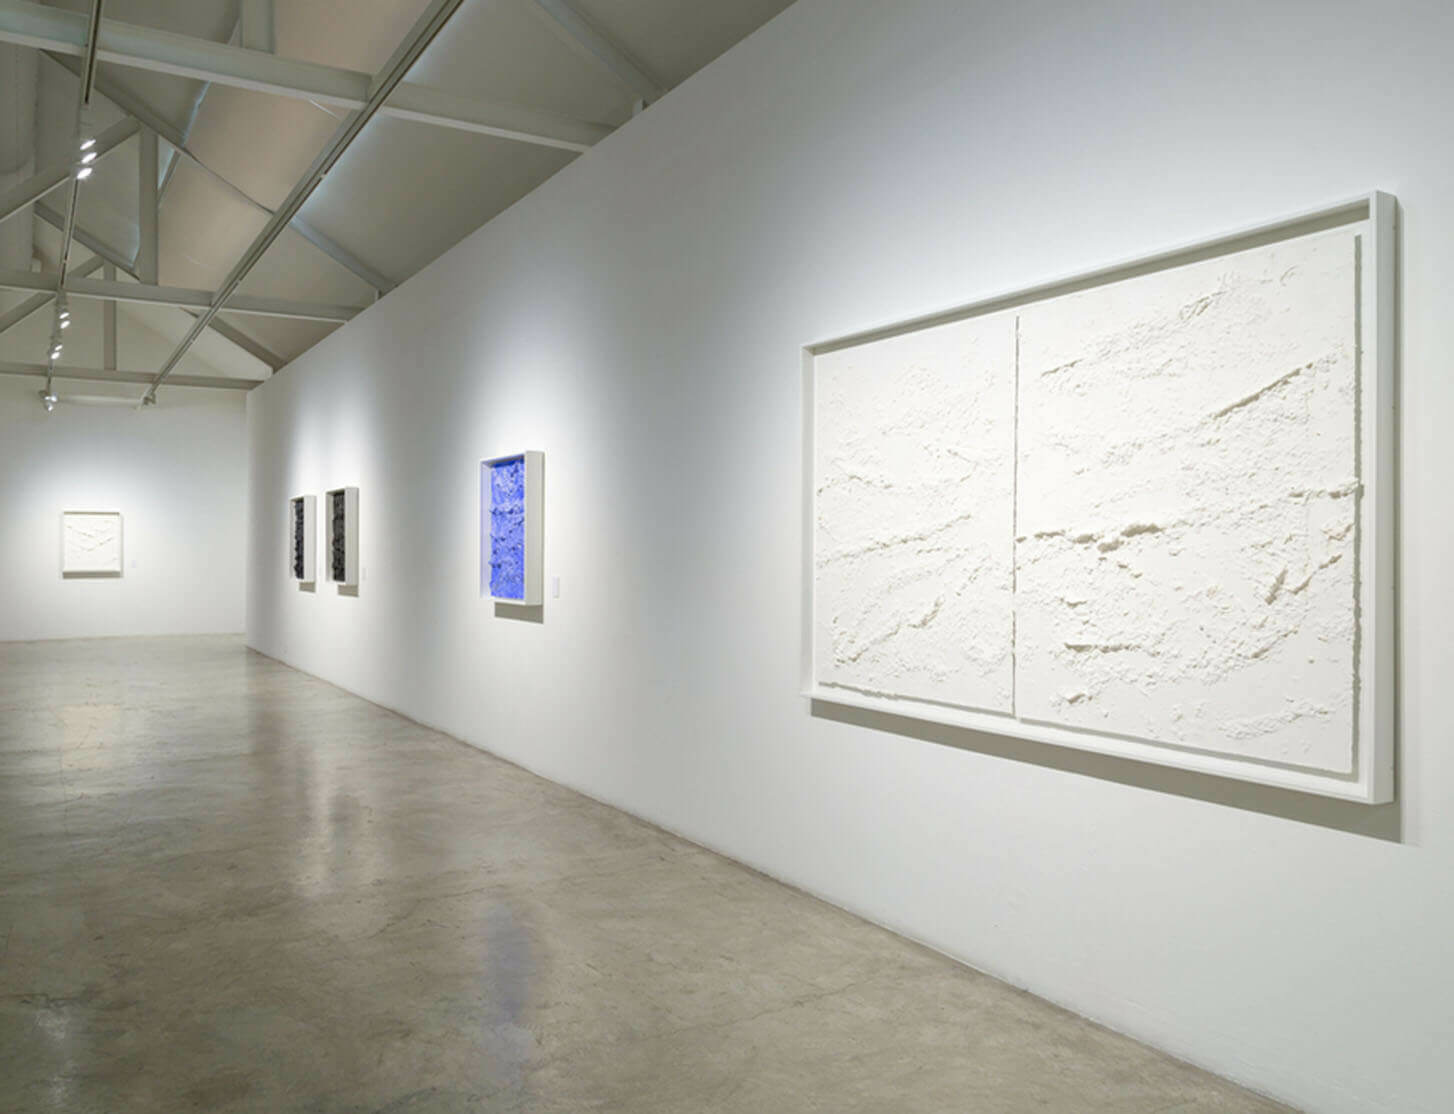 Solo exhibition by Jason Martin opens at STPI in Singapore